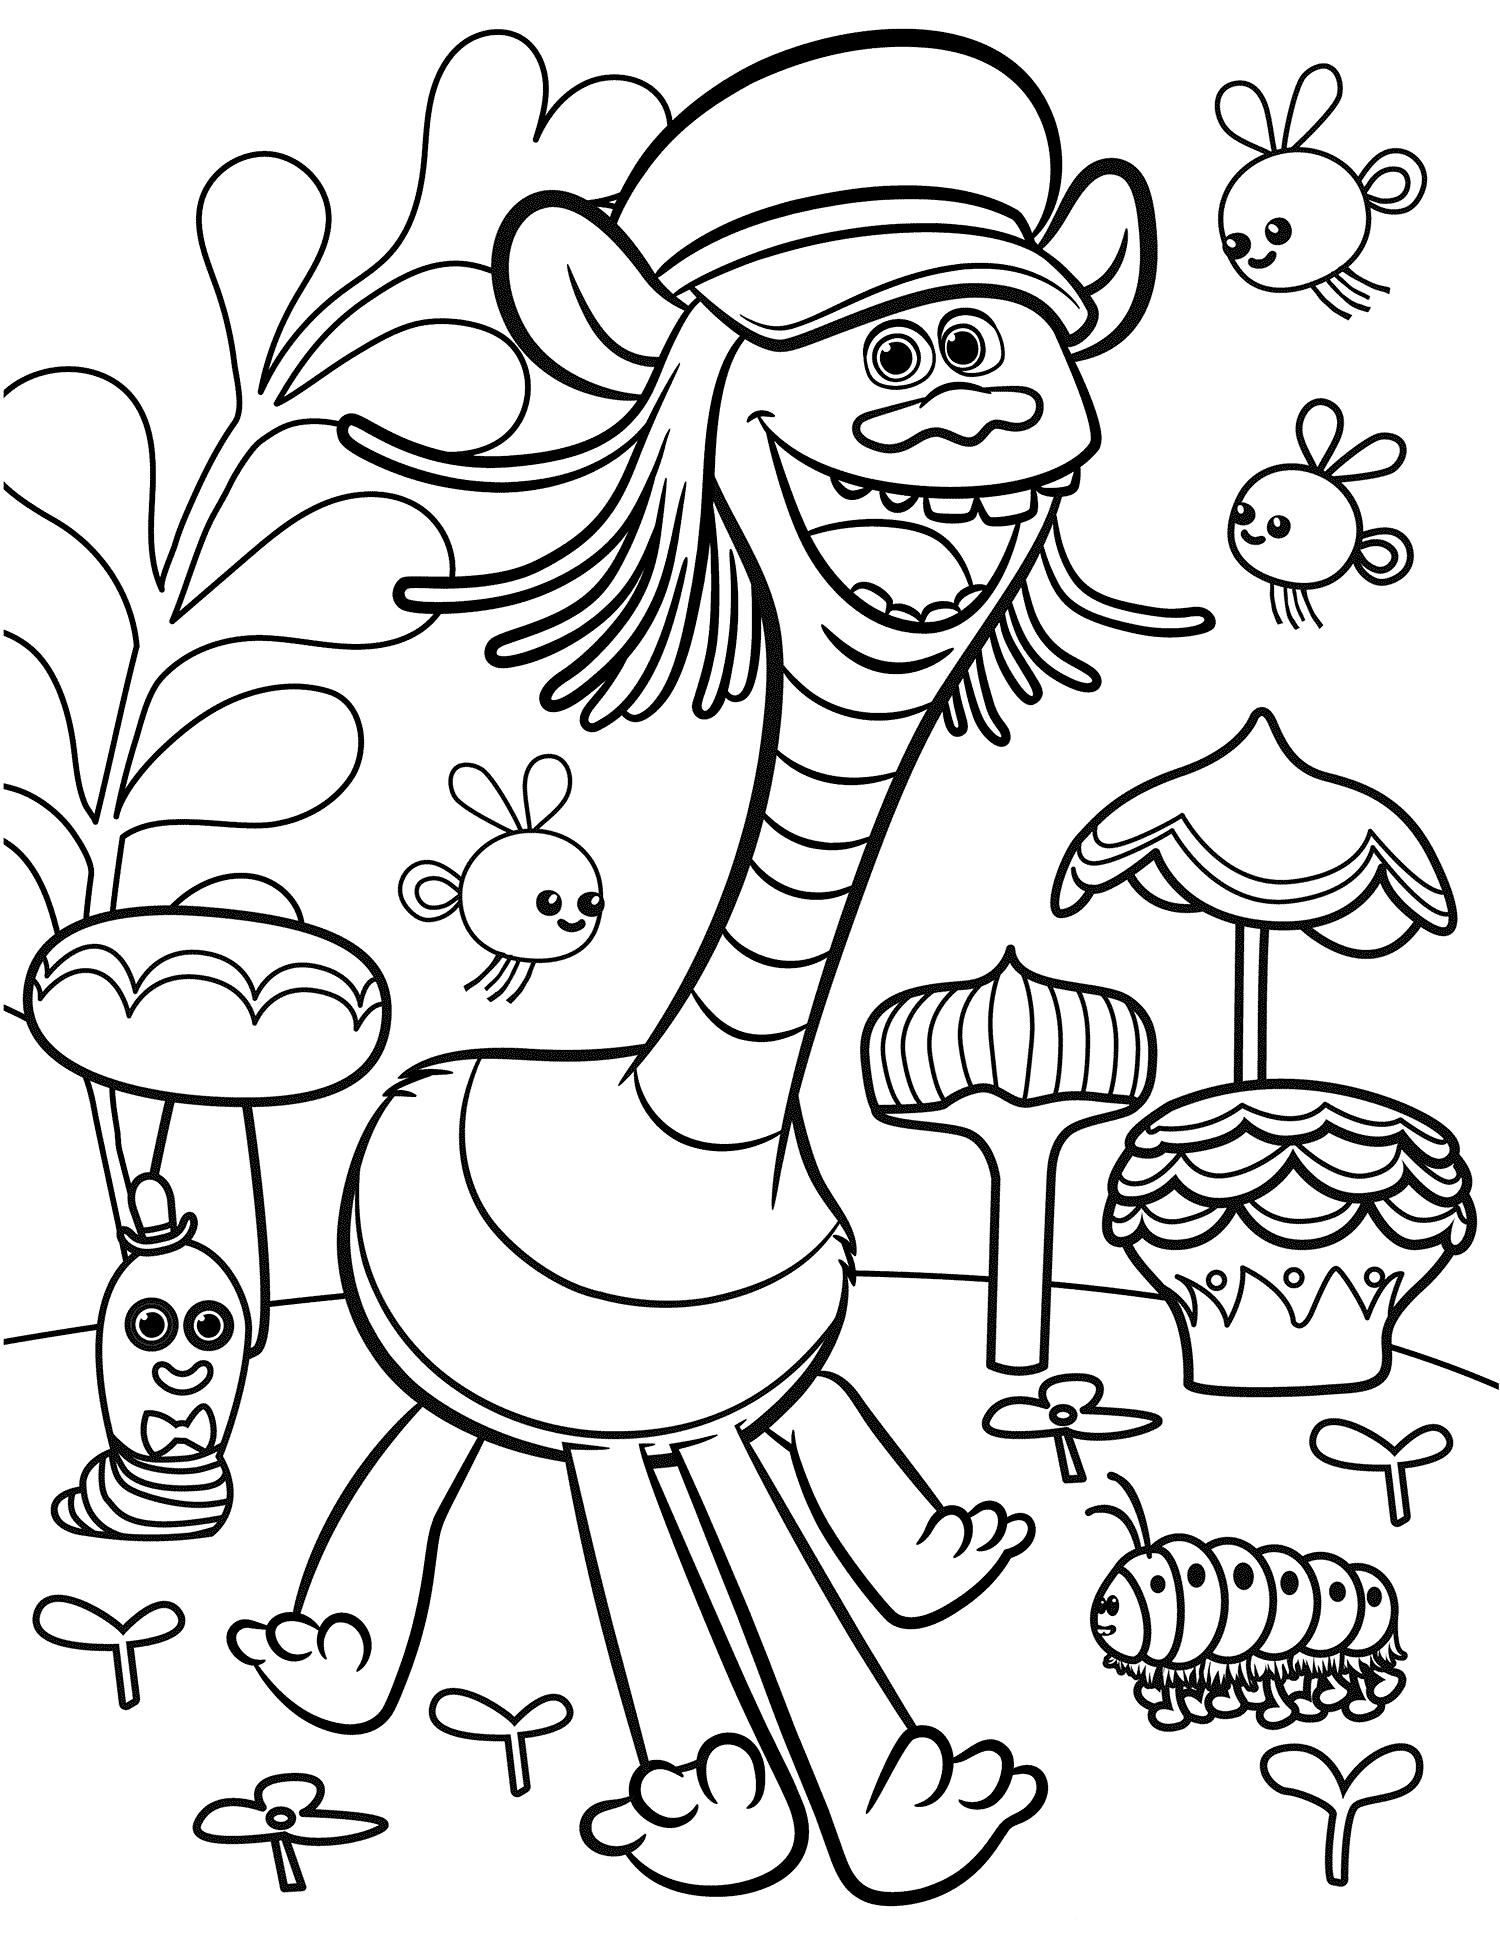 trolls coloring pages trolls movie coloring pages best coloring pages for kids trolls pages coloring